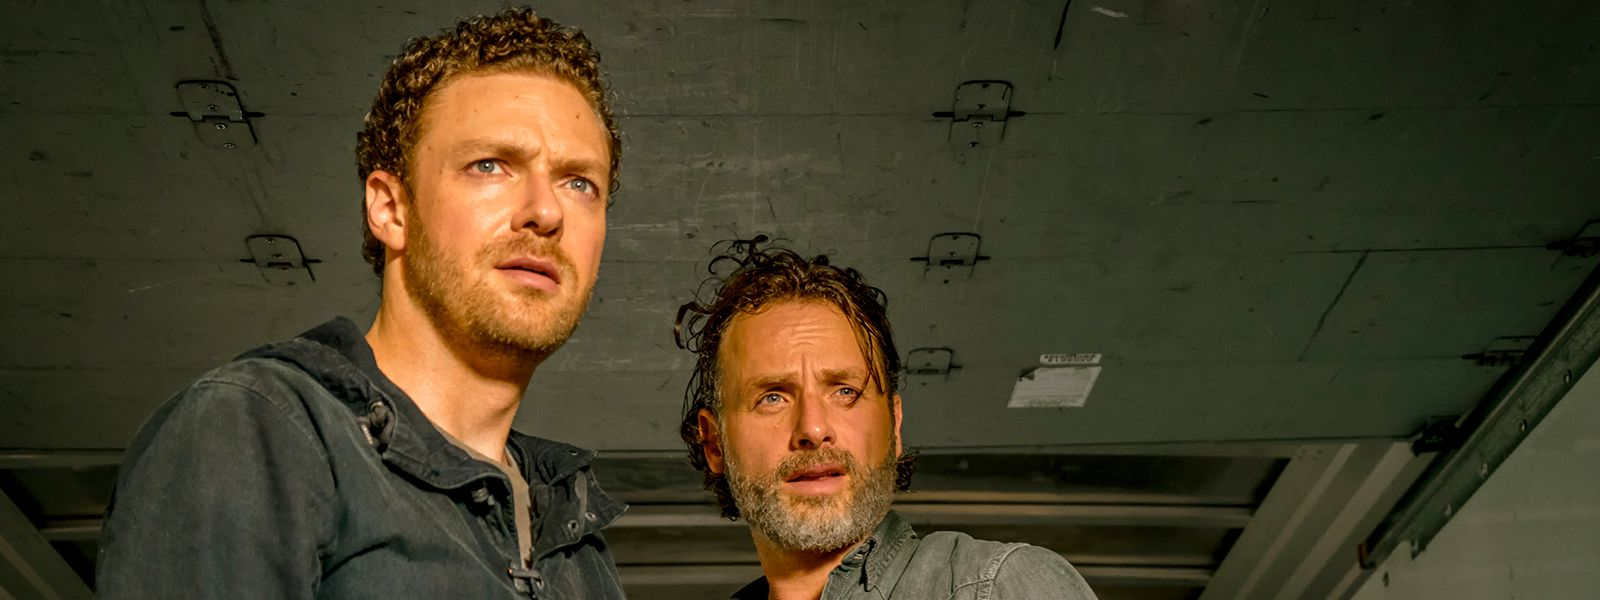 the-walking-dead-episode-707-aaron-marquand-rick-lincoln-post-800×600